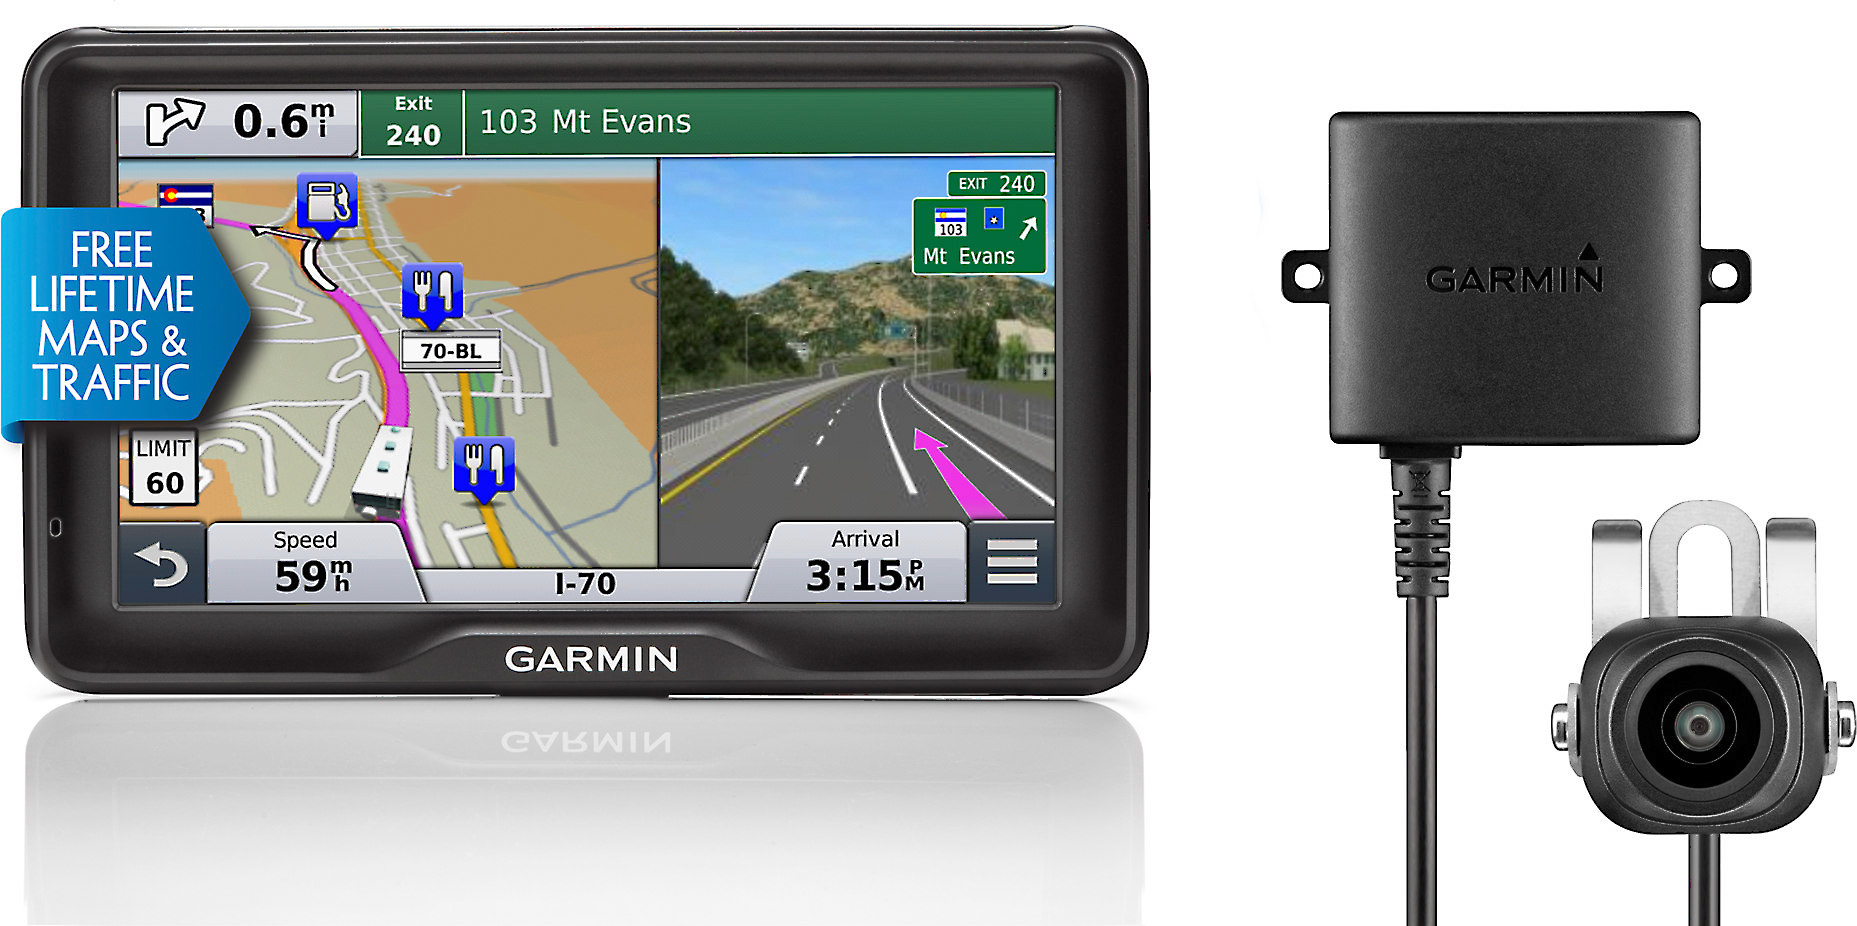 Garmin Rv 760lmt With Wireless Back Up Camera Portable Navigator With Voice Activated Navigation For Rv Drivers Includes Free Lifetime Map And Traffic Updates At Crutchfield